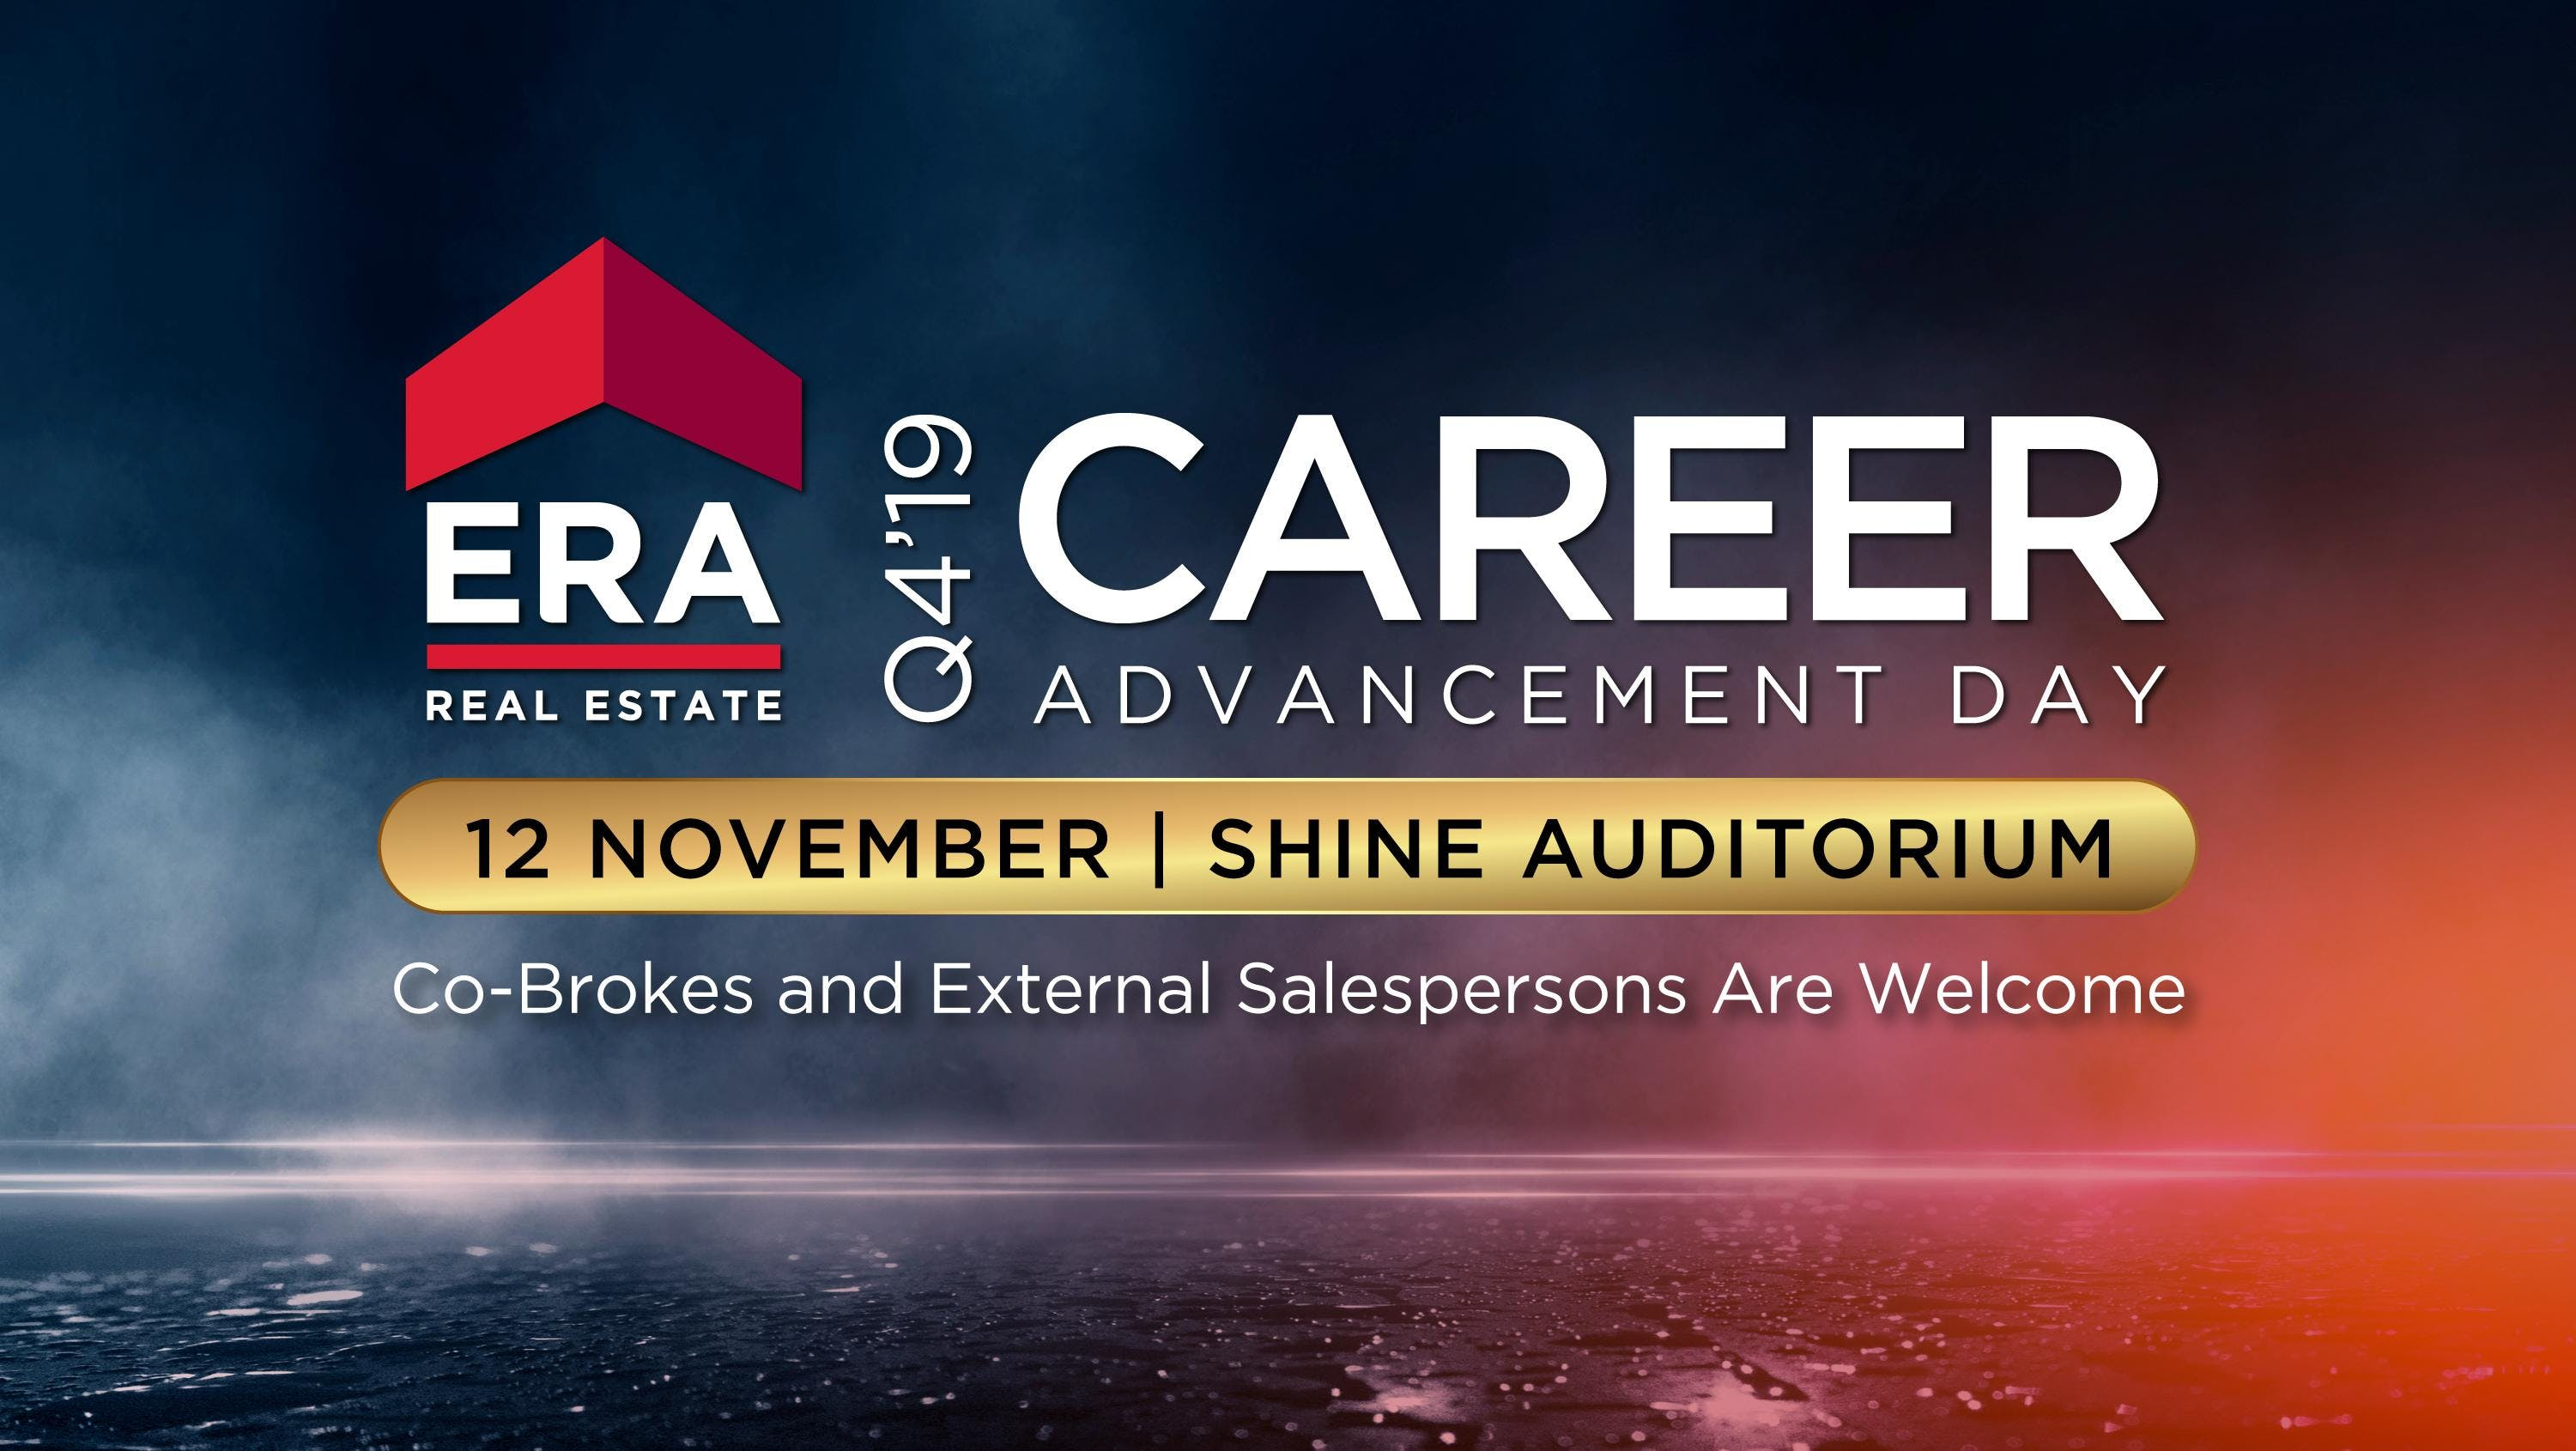 Q4'19 Career Advancement Day